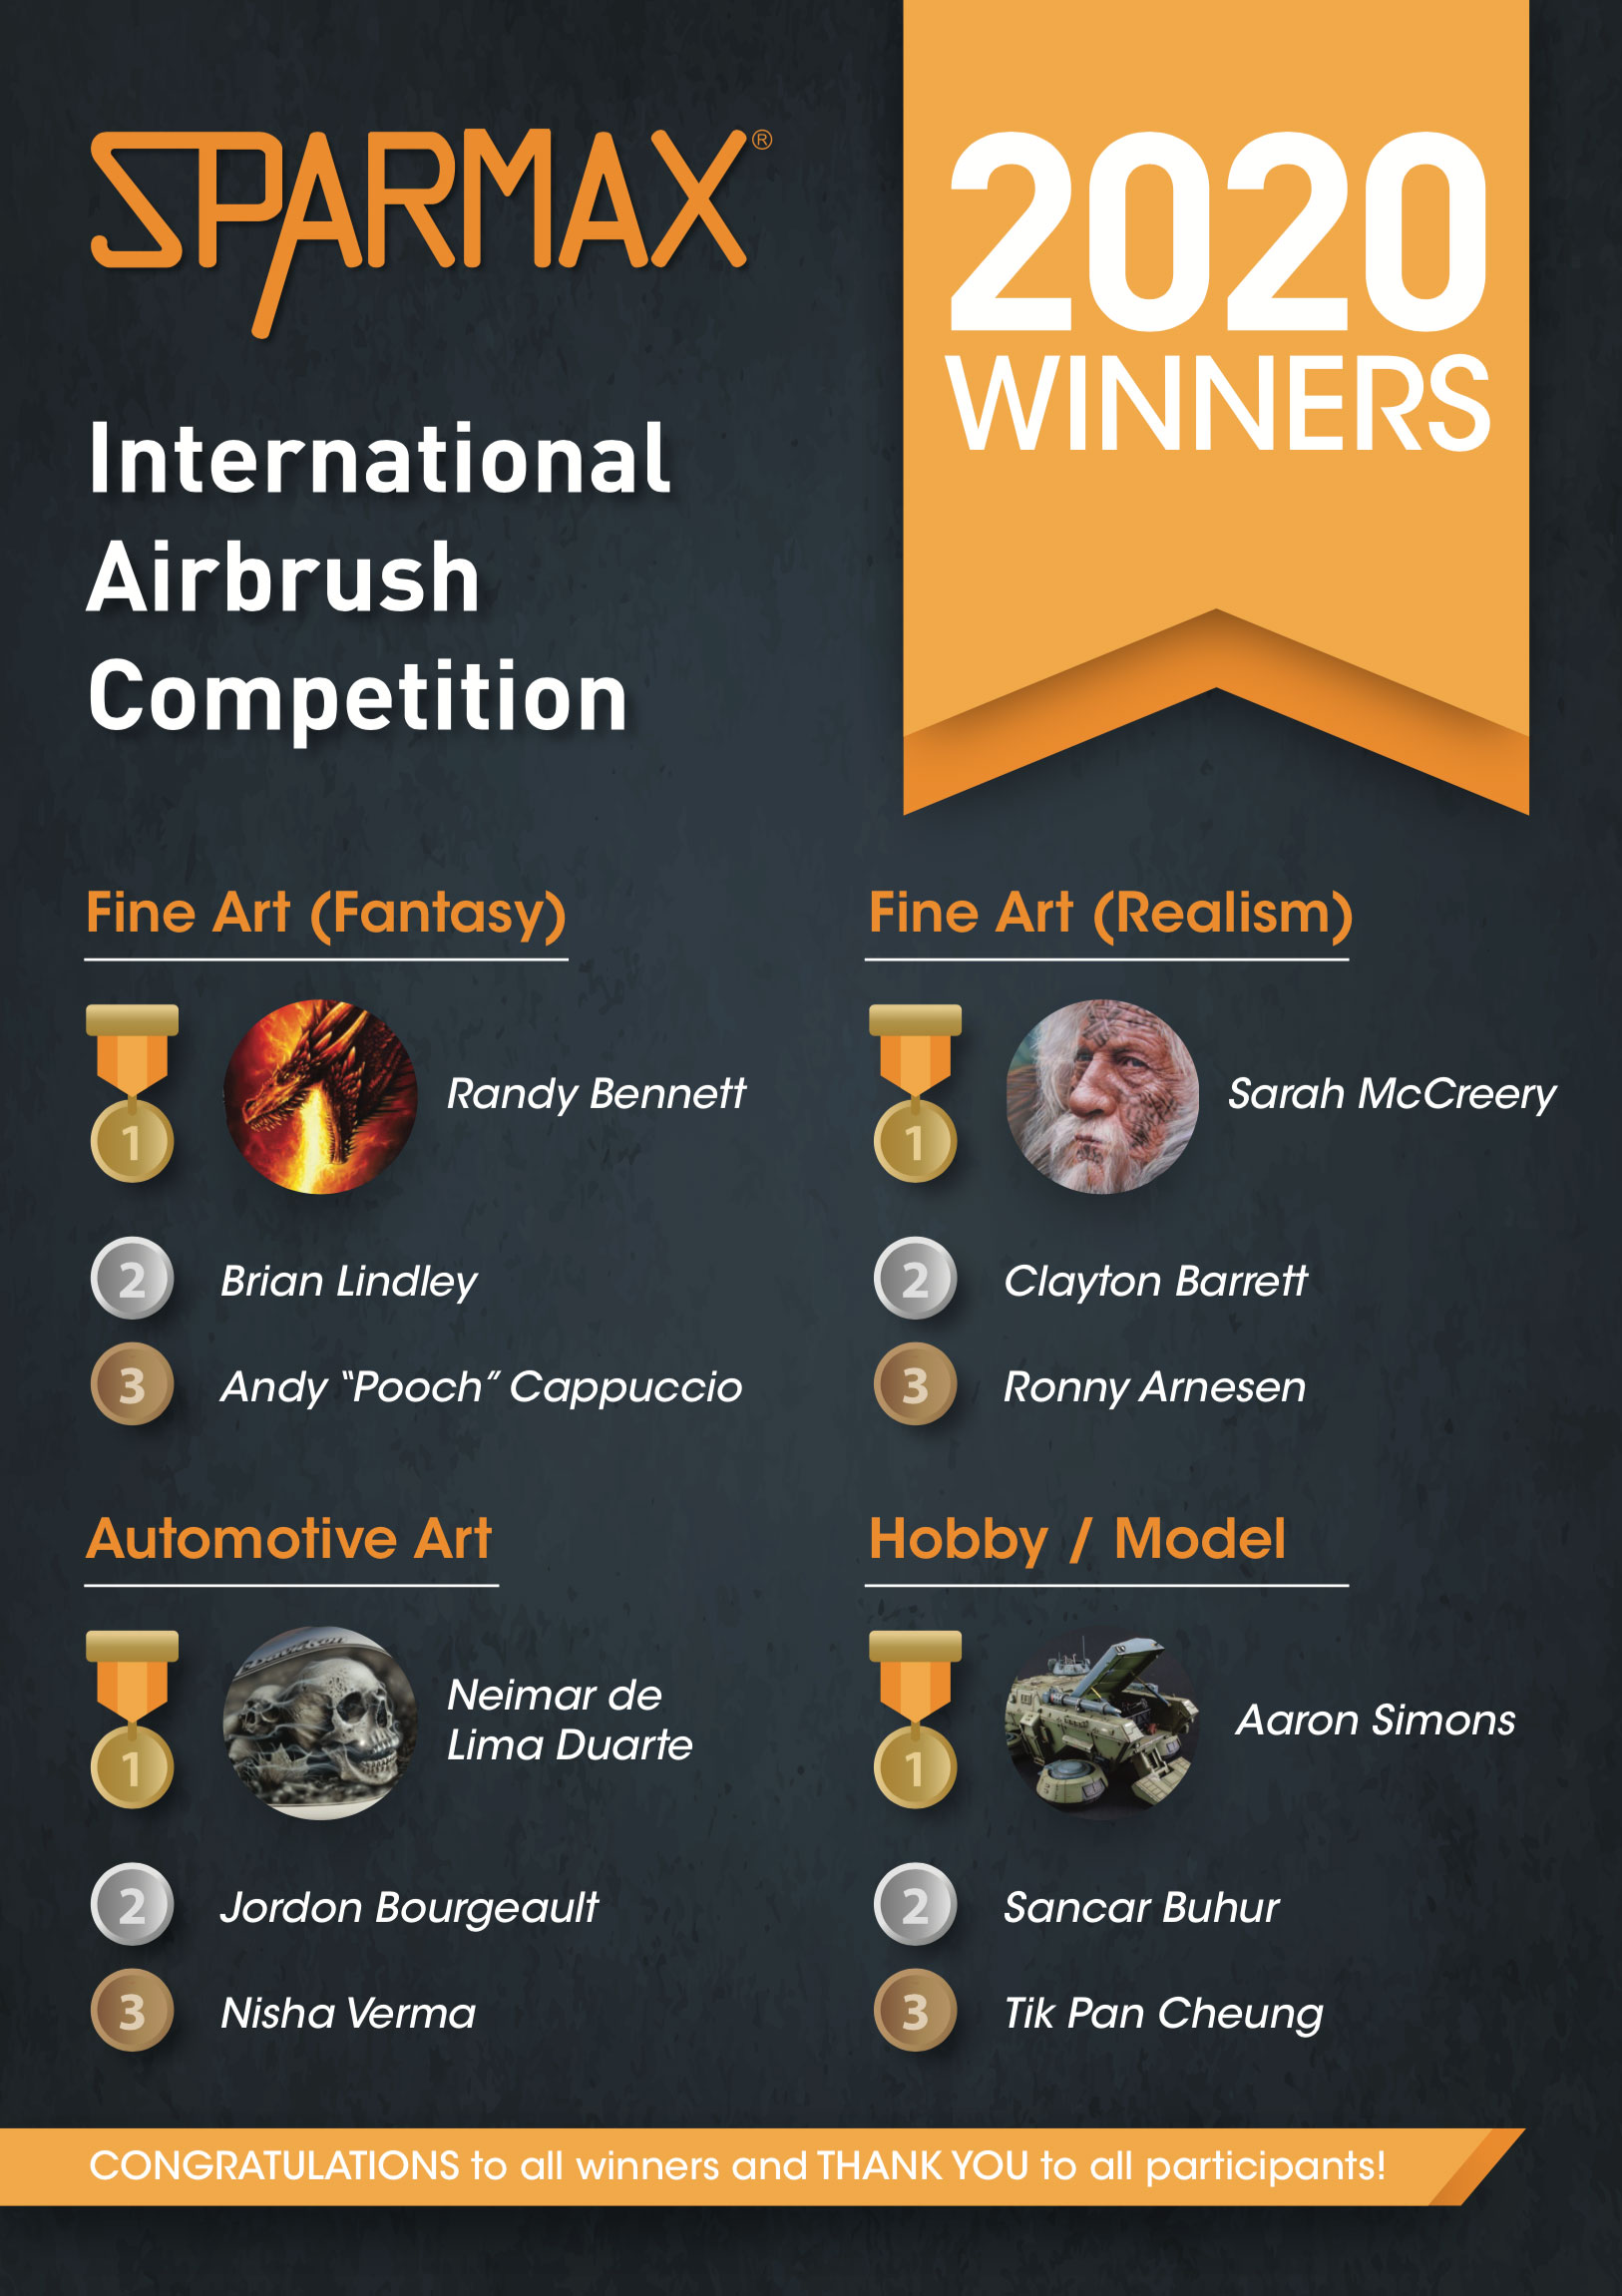 Sparmax Airbrush Contest 2020: The winners